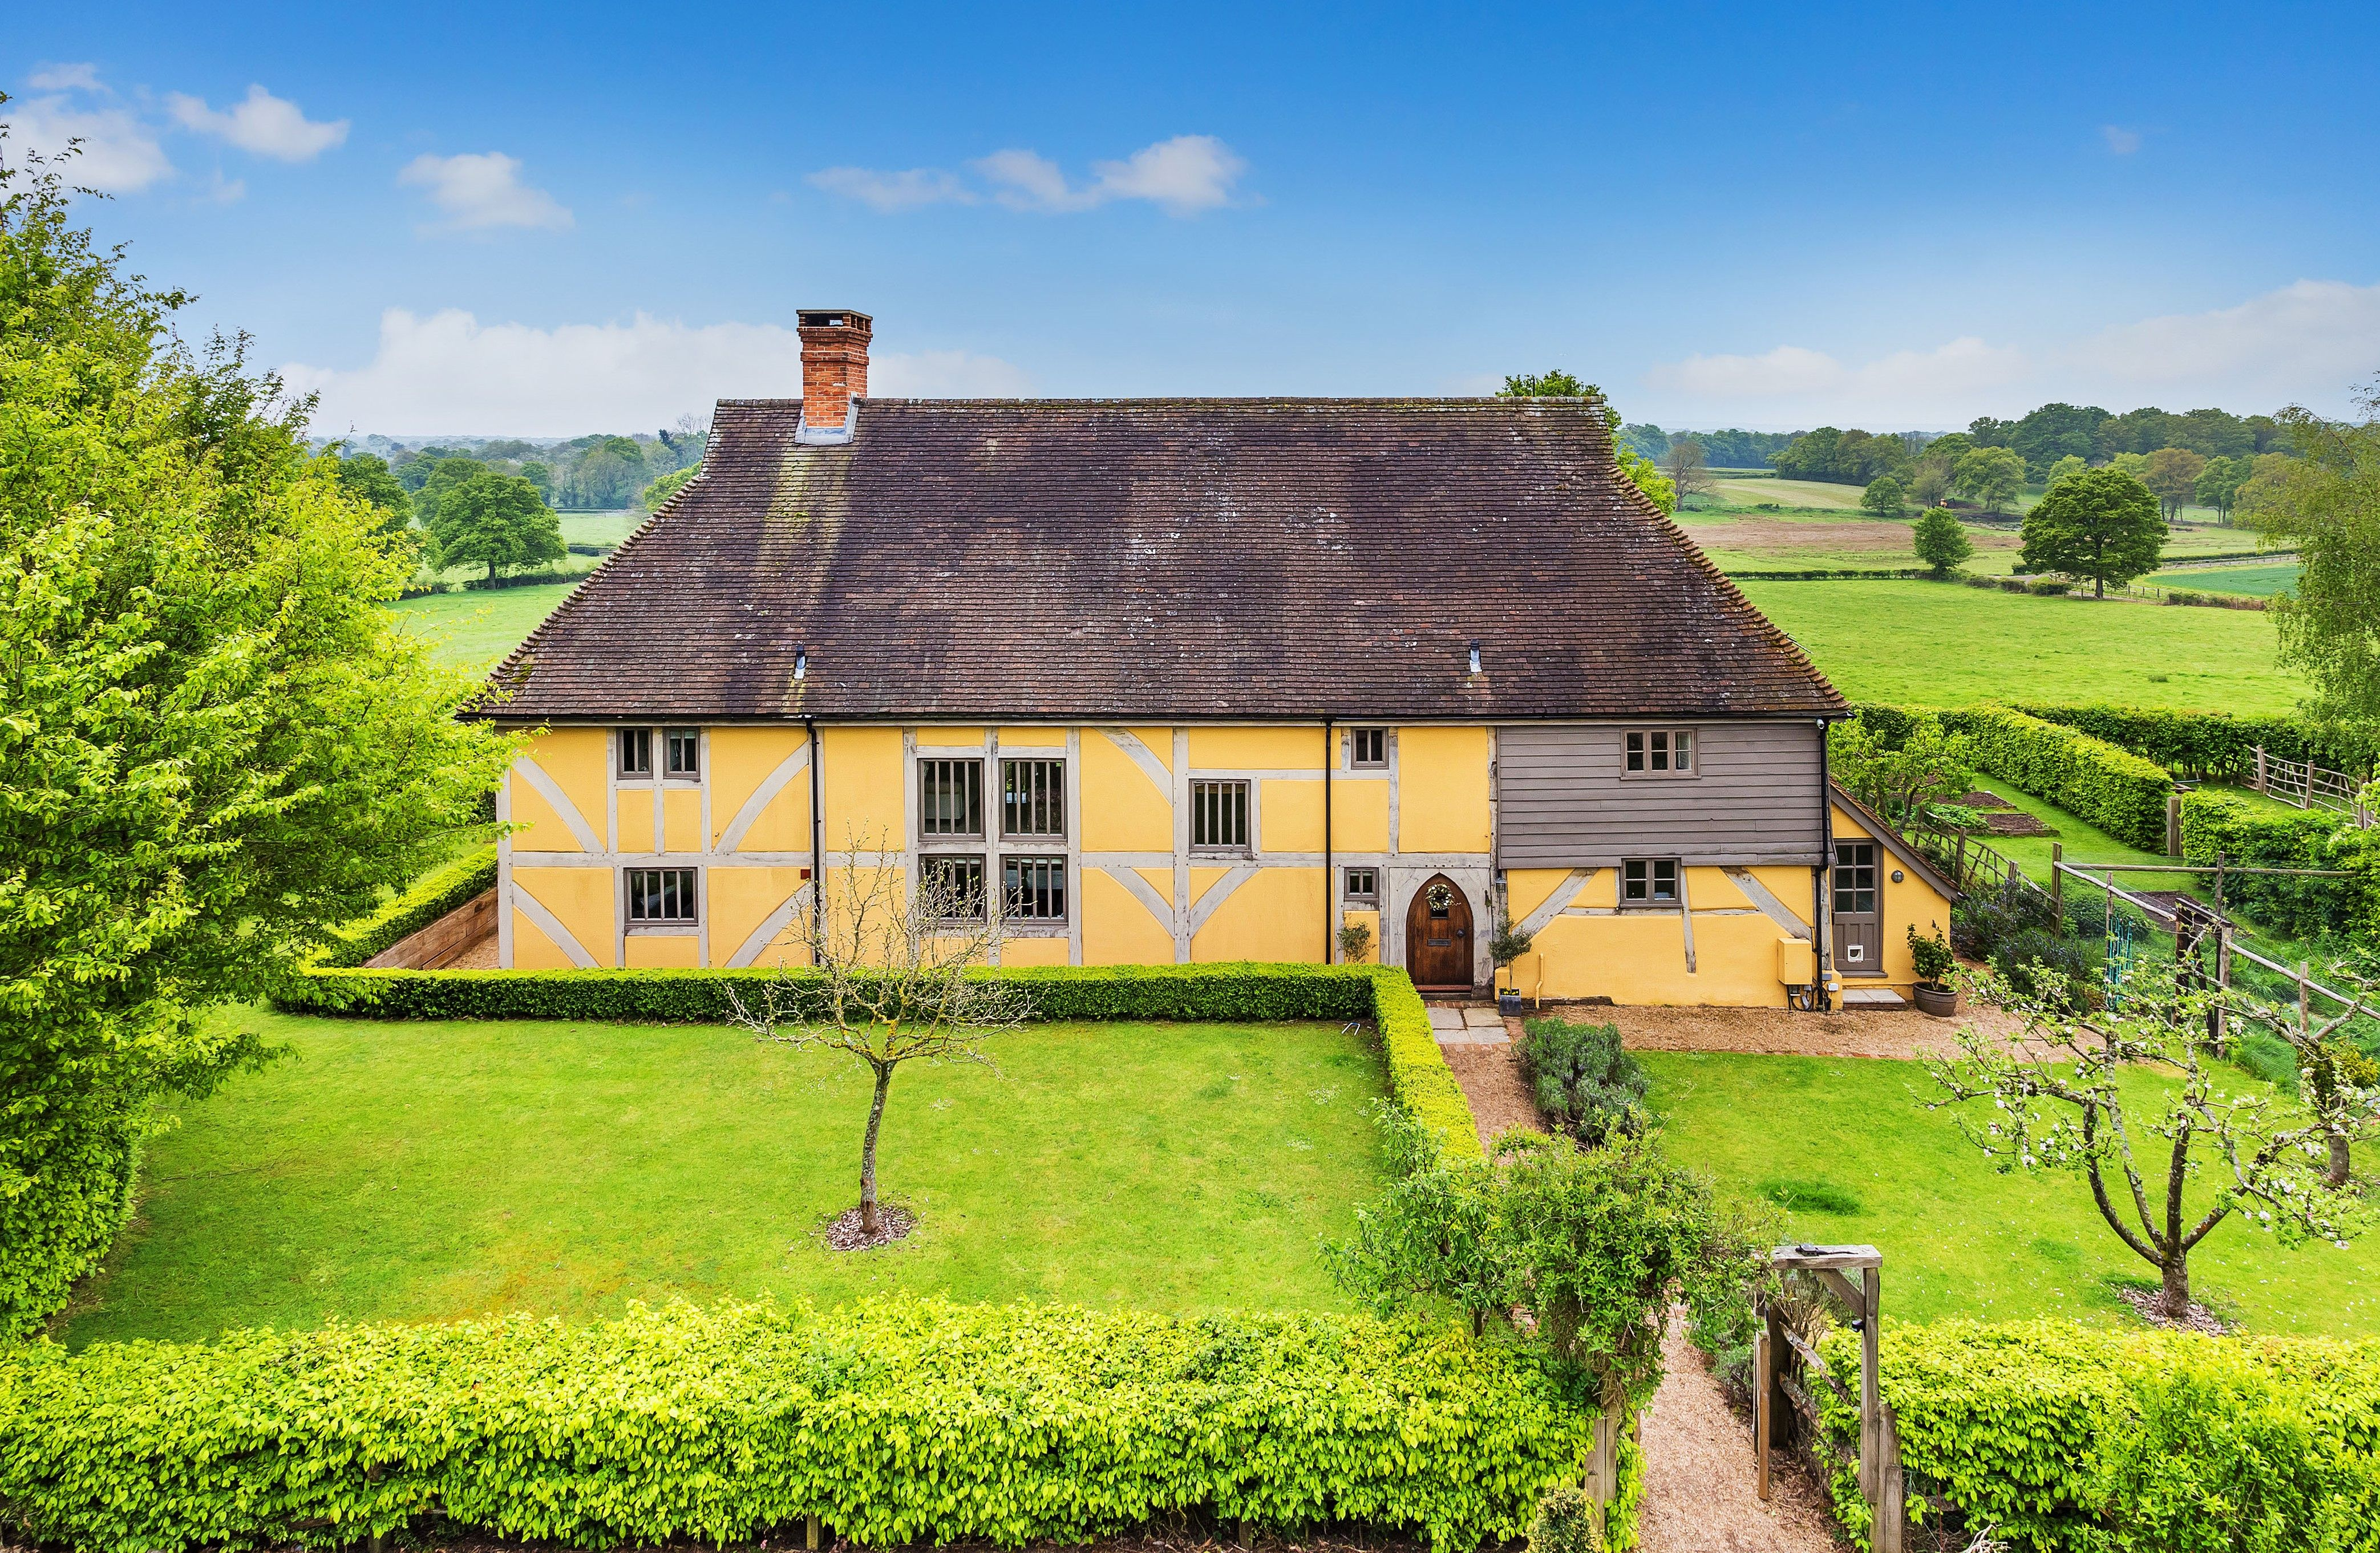 Quaint yellow cottage from Escape to the Country for sale in Surrey